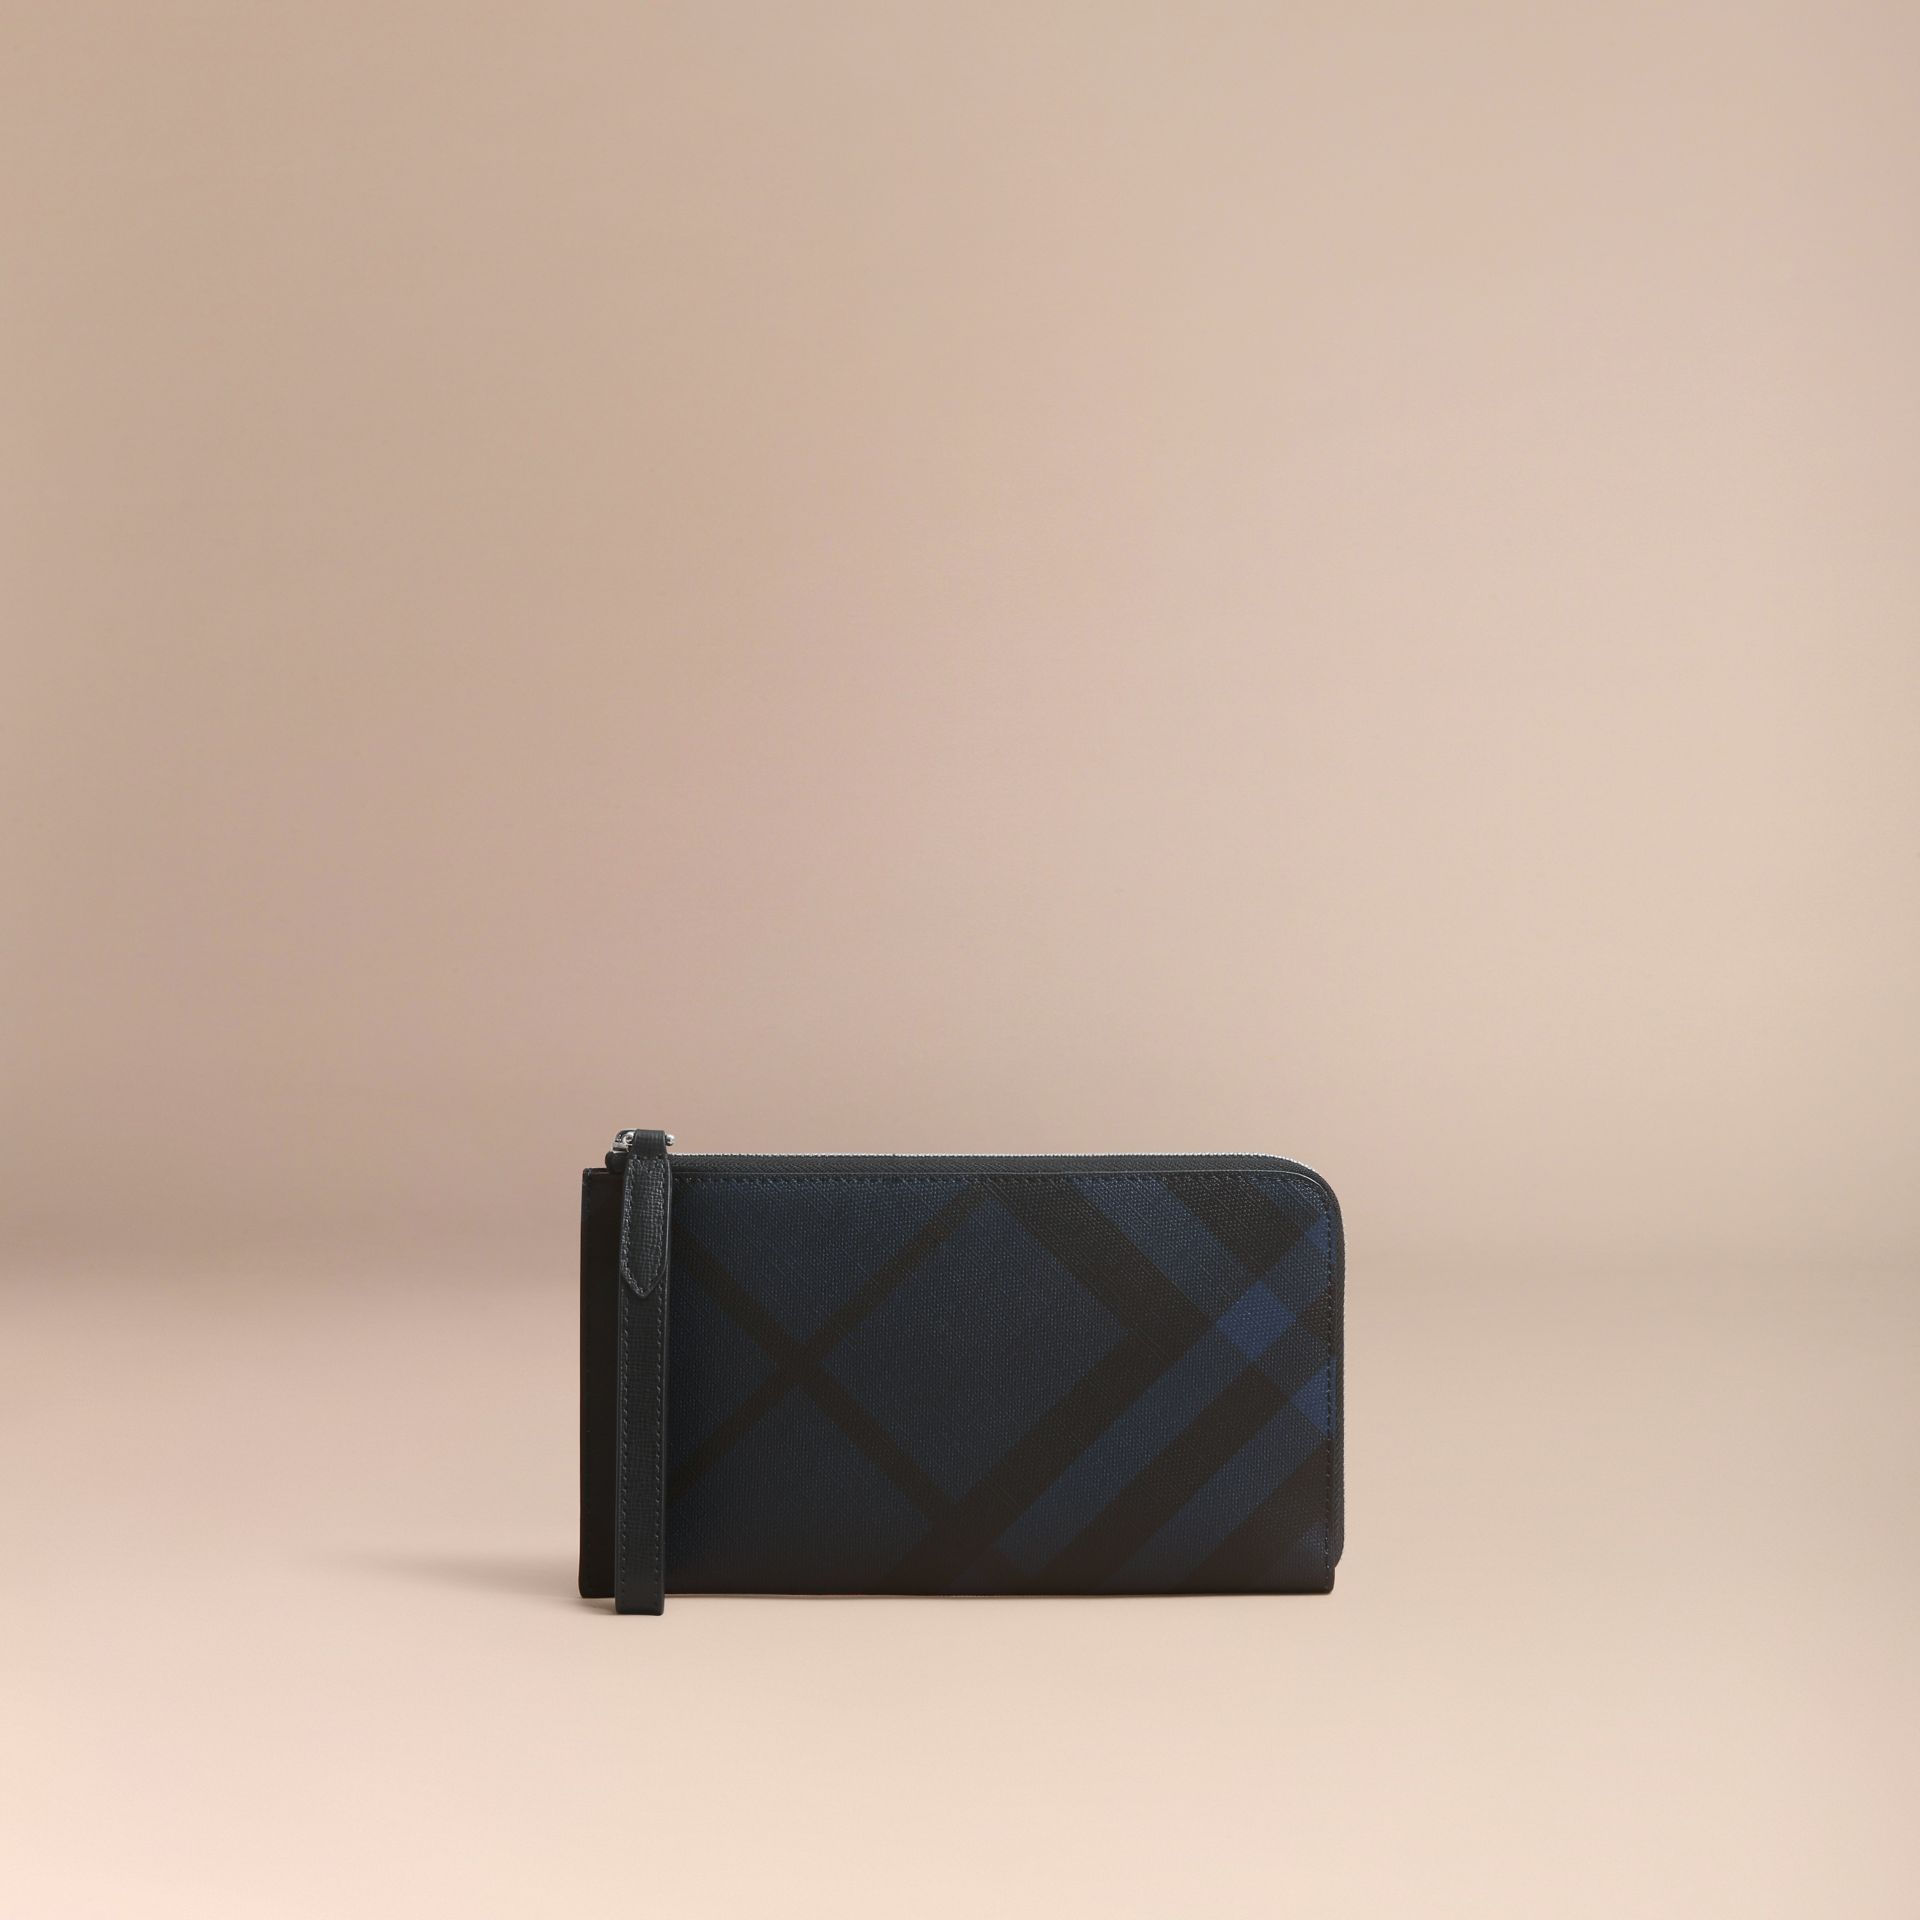 London Check Travel Wallet in Navy/black - Men | Burberry - gallery image 6